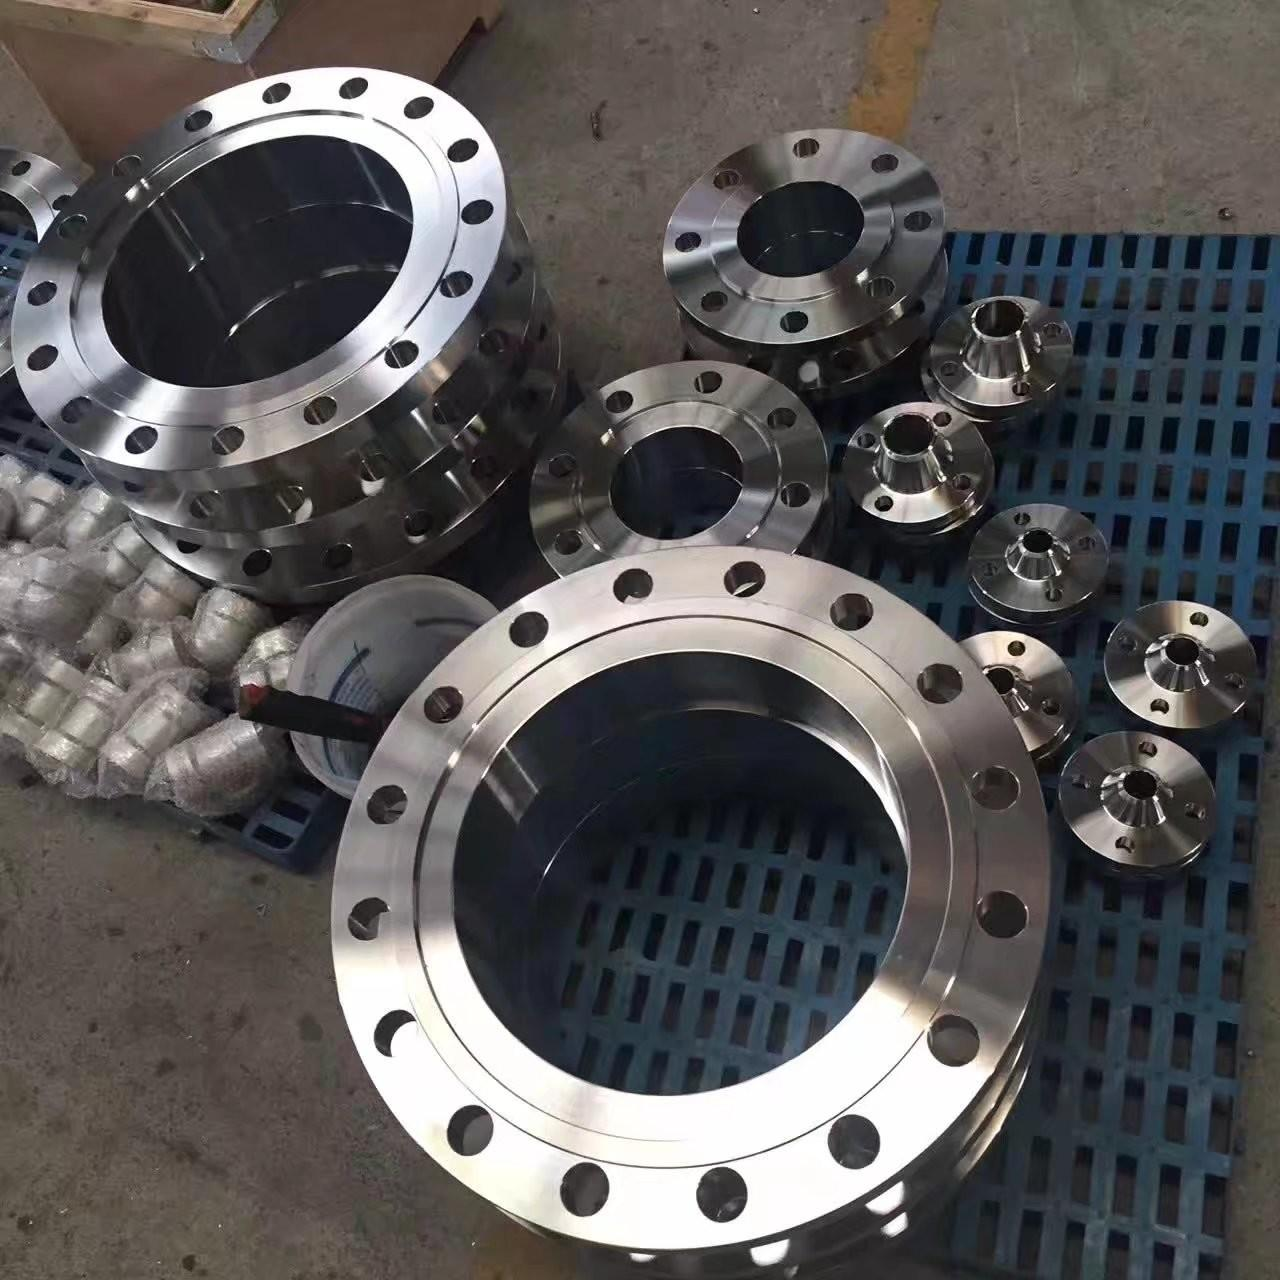 China ASME B16.47 Flat Face Weld Neck Flange , Long Weld Neck Flange 300lbs Pressure  Ameriforge/Coffer/Texas Metals (USA), wholesale